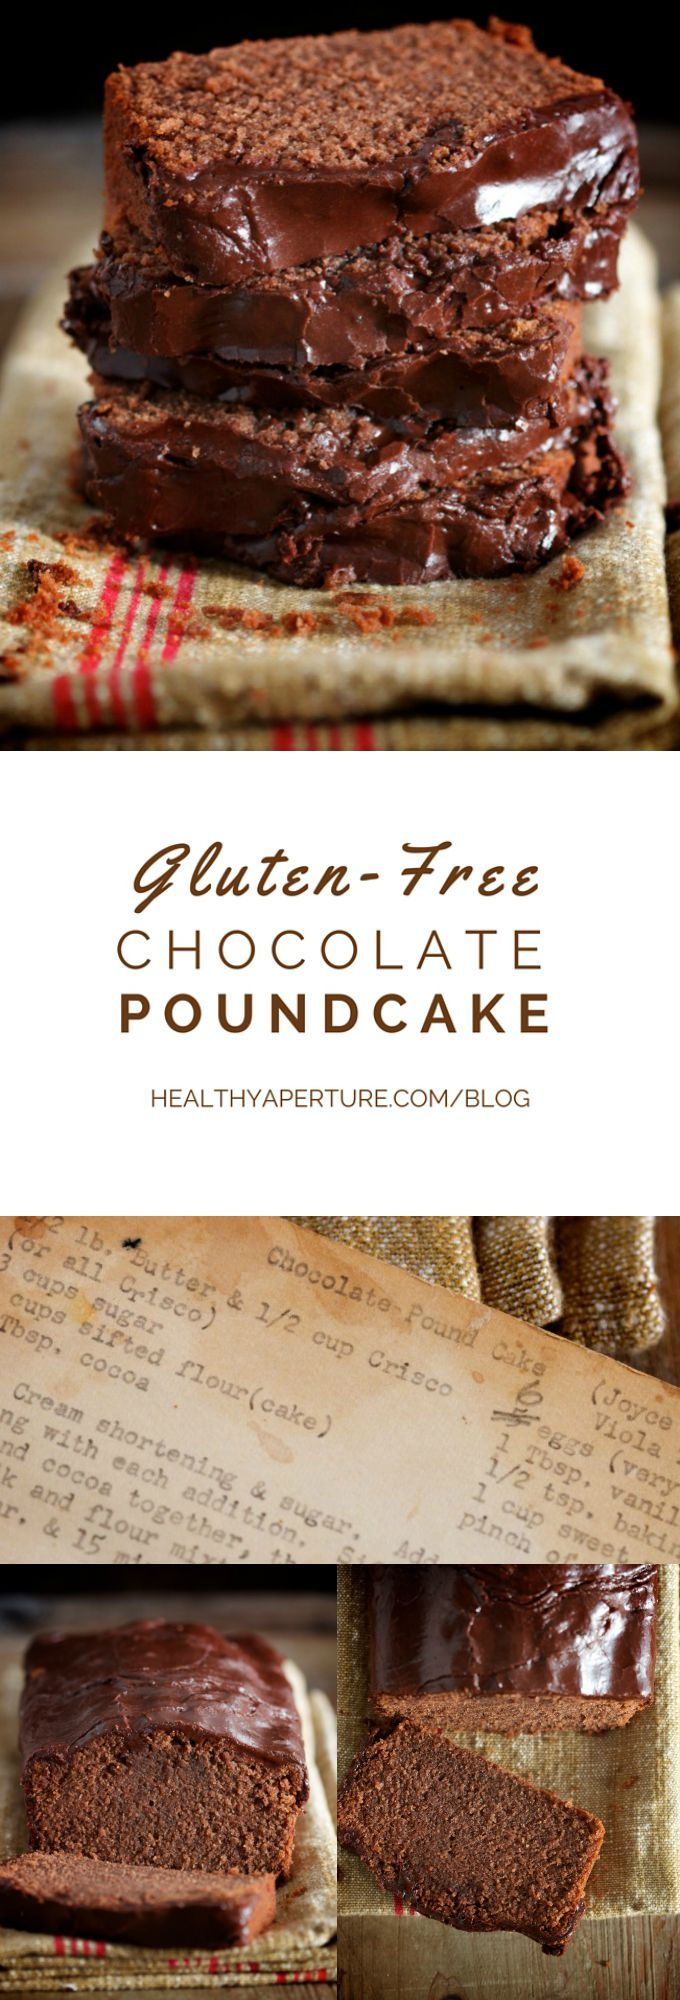 Pound cake gets a gluten free makeover with this Gluten-Free Chocolate Pound Cake recipe.